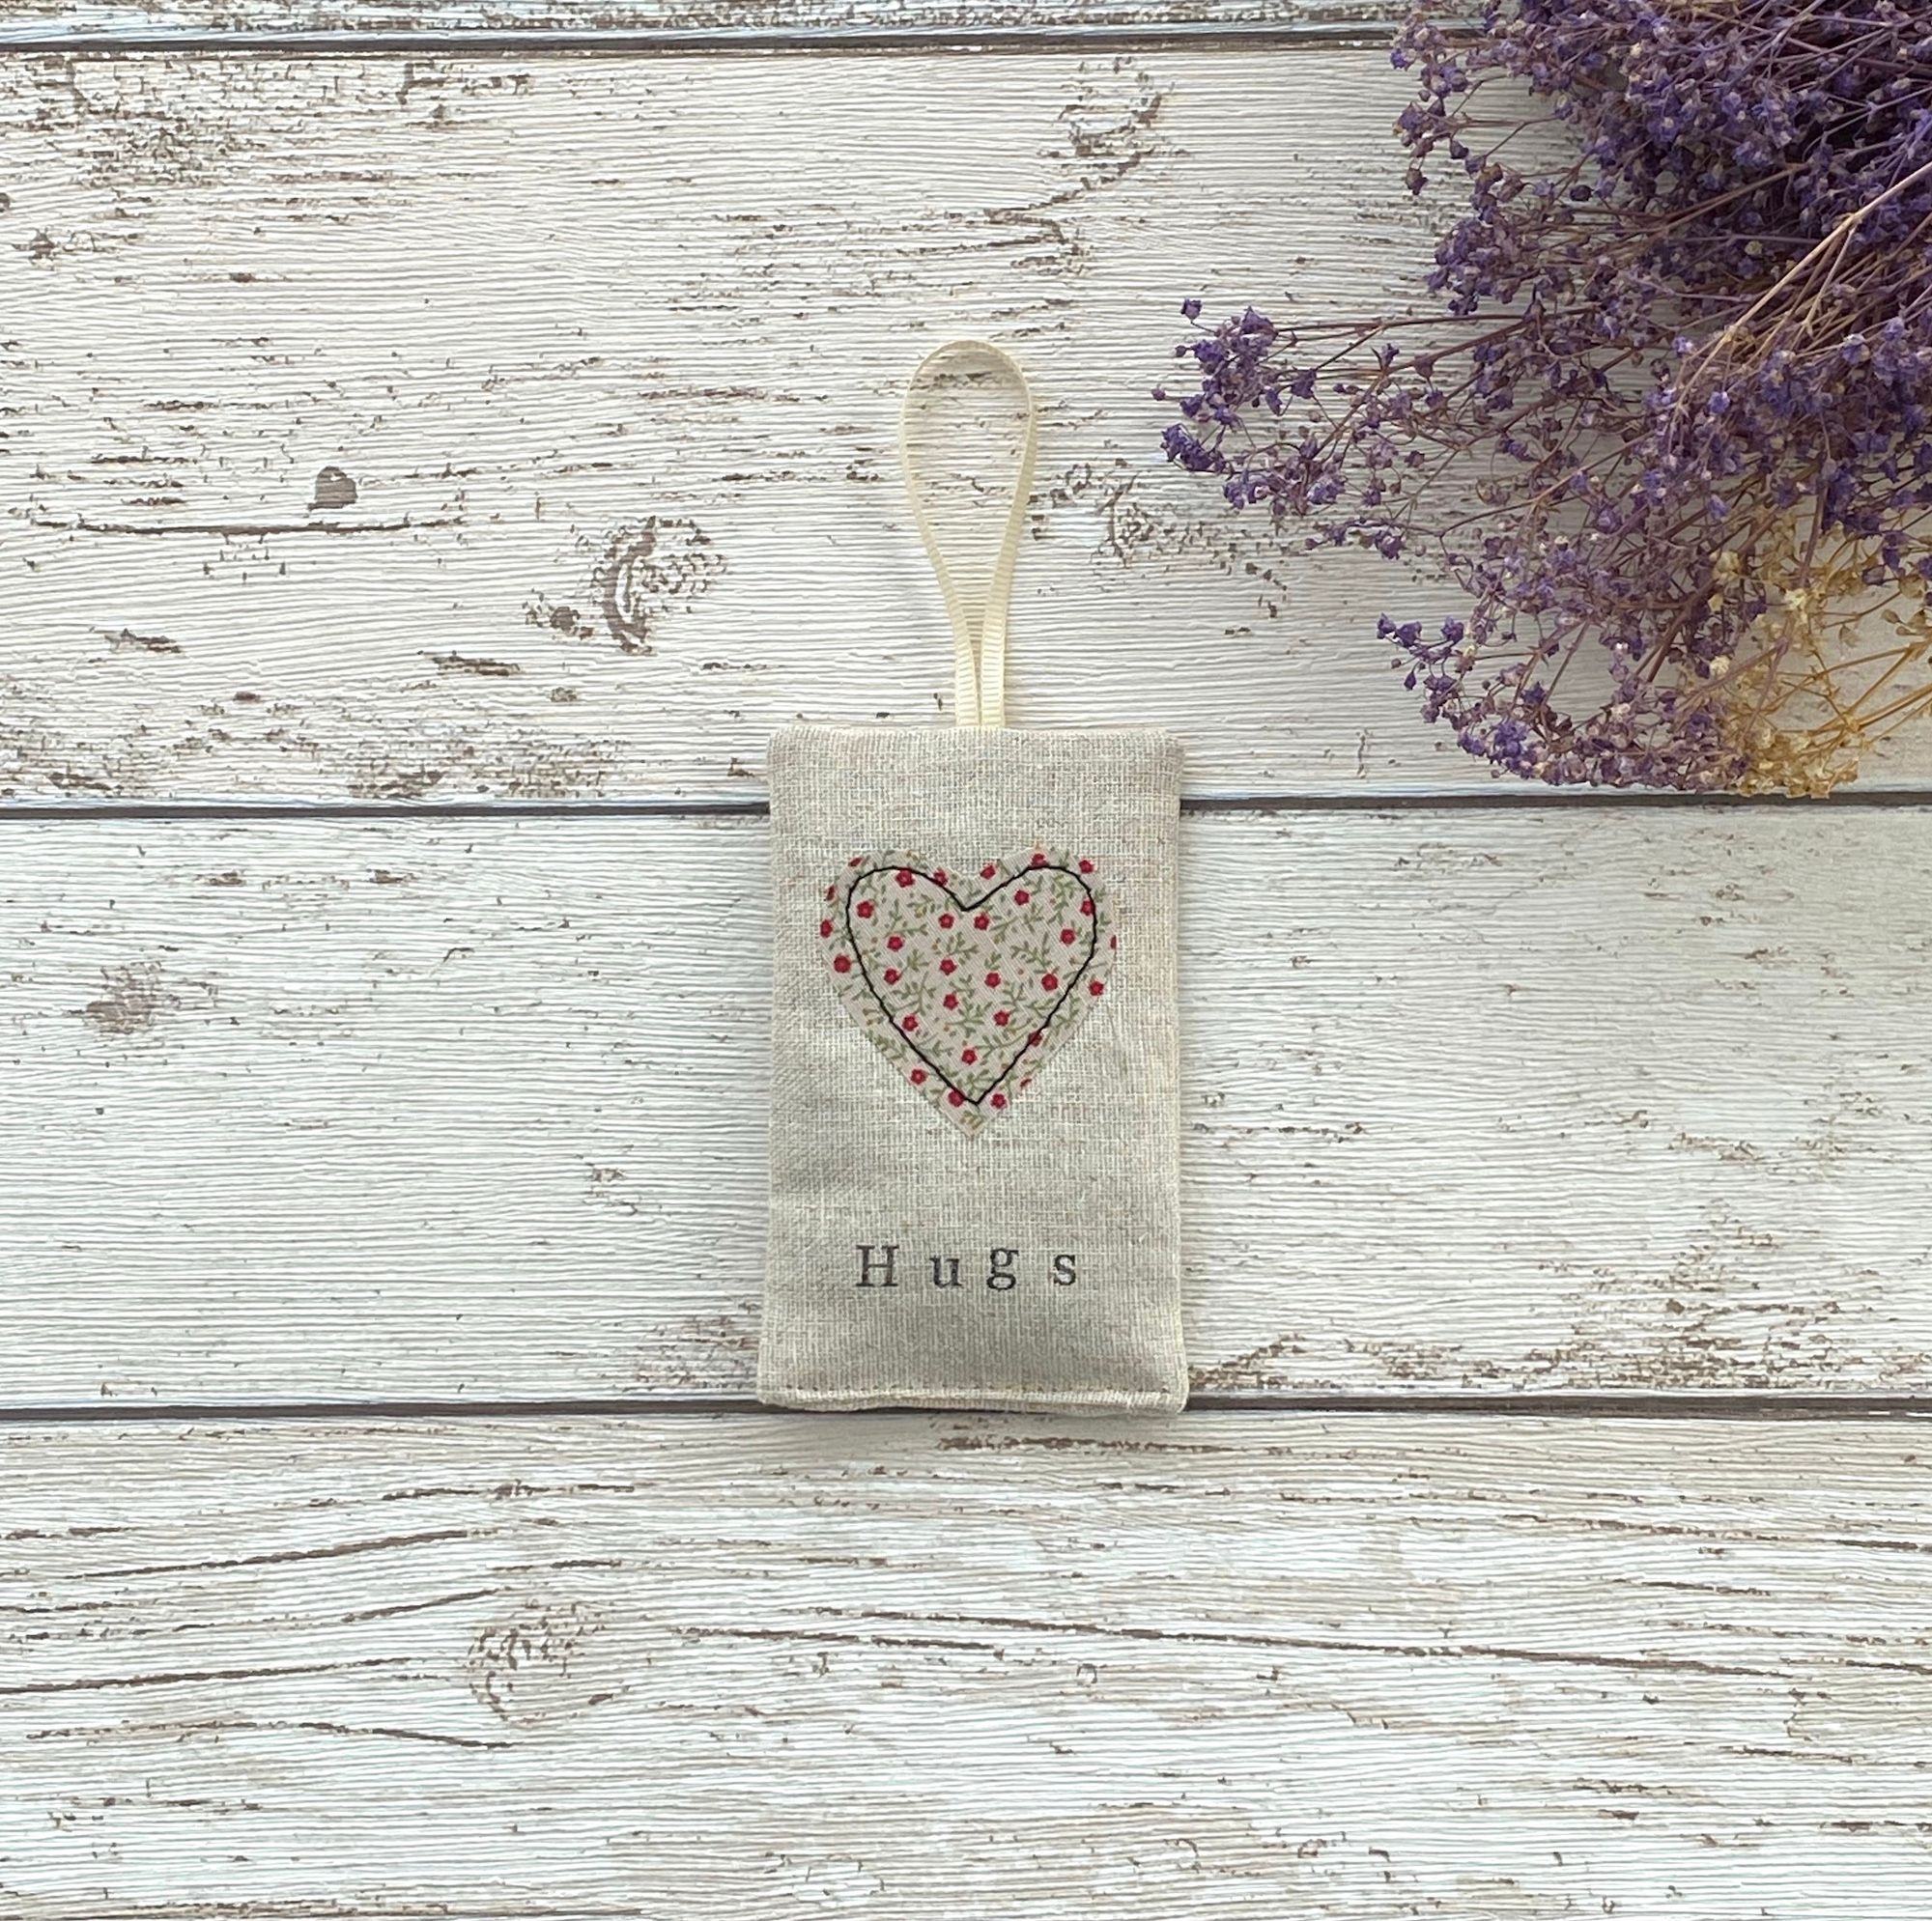 A rectangle linen bag with a fabric heart stitched to the front. The heart has little red flowers on. A cream ribbon is fixed at the top.  SHown on a wooden surface with purple dried flowers.